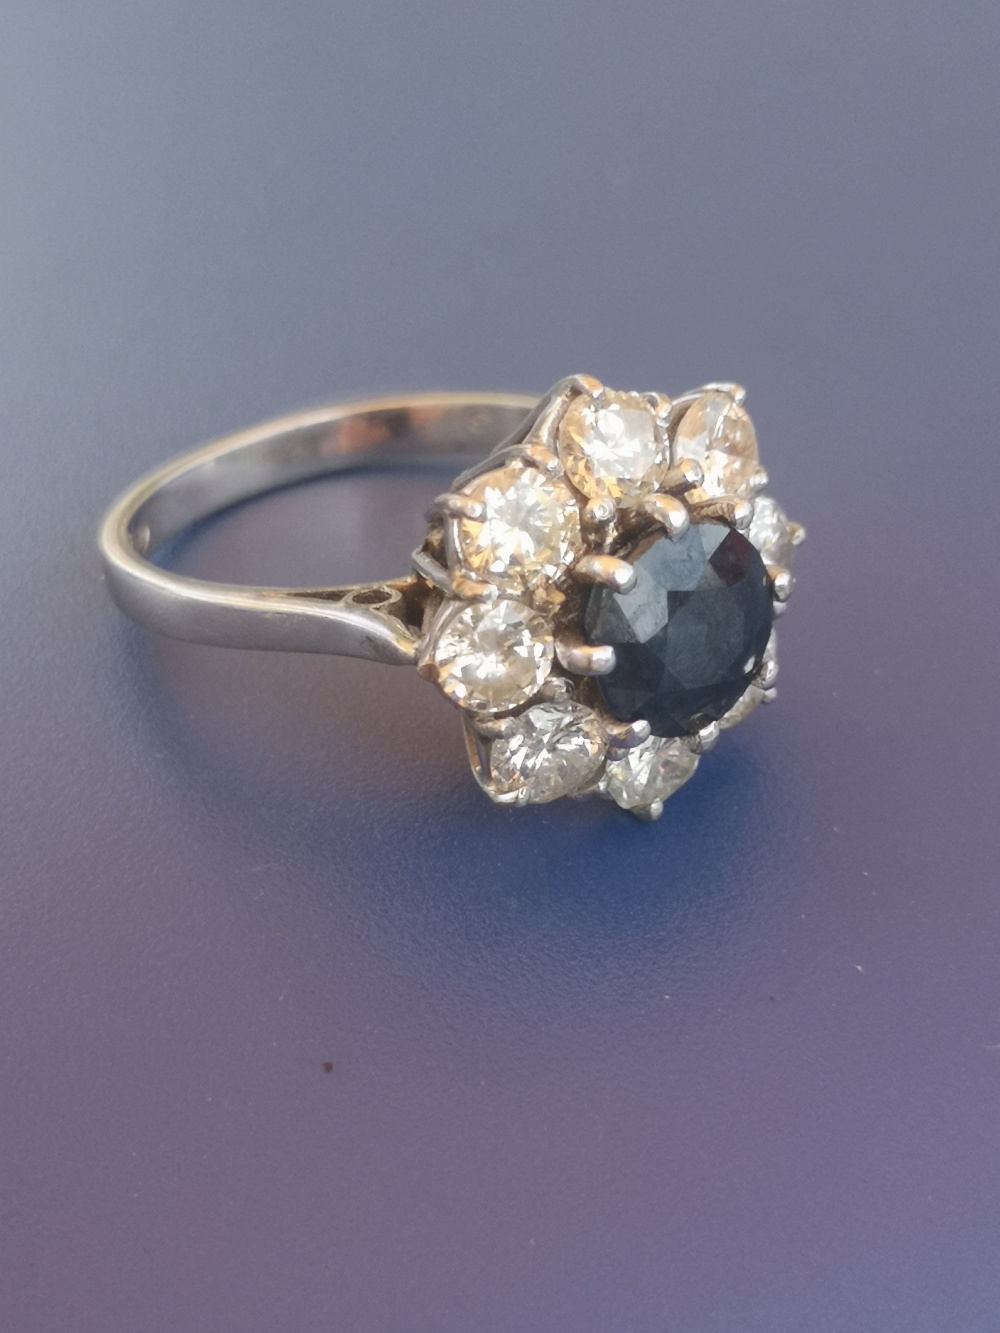 A modern sapphire & diamond 18ct white gold cluster ring - London marks. Finger size L. - Image 4 of 4